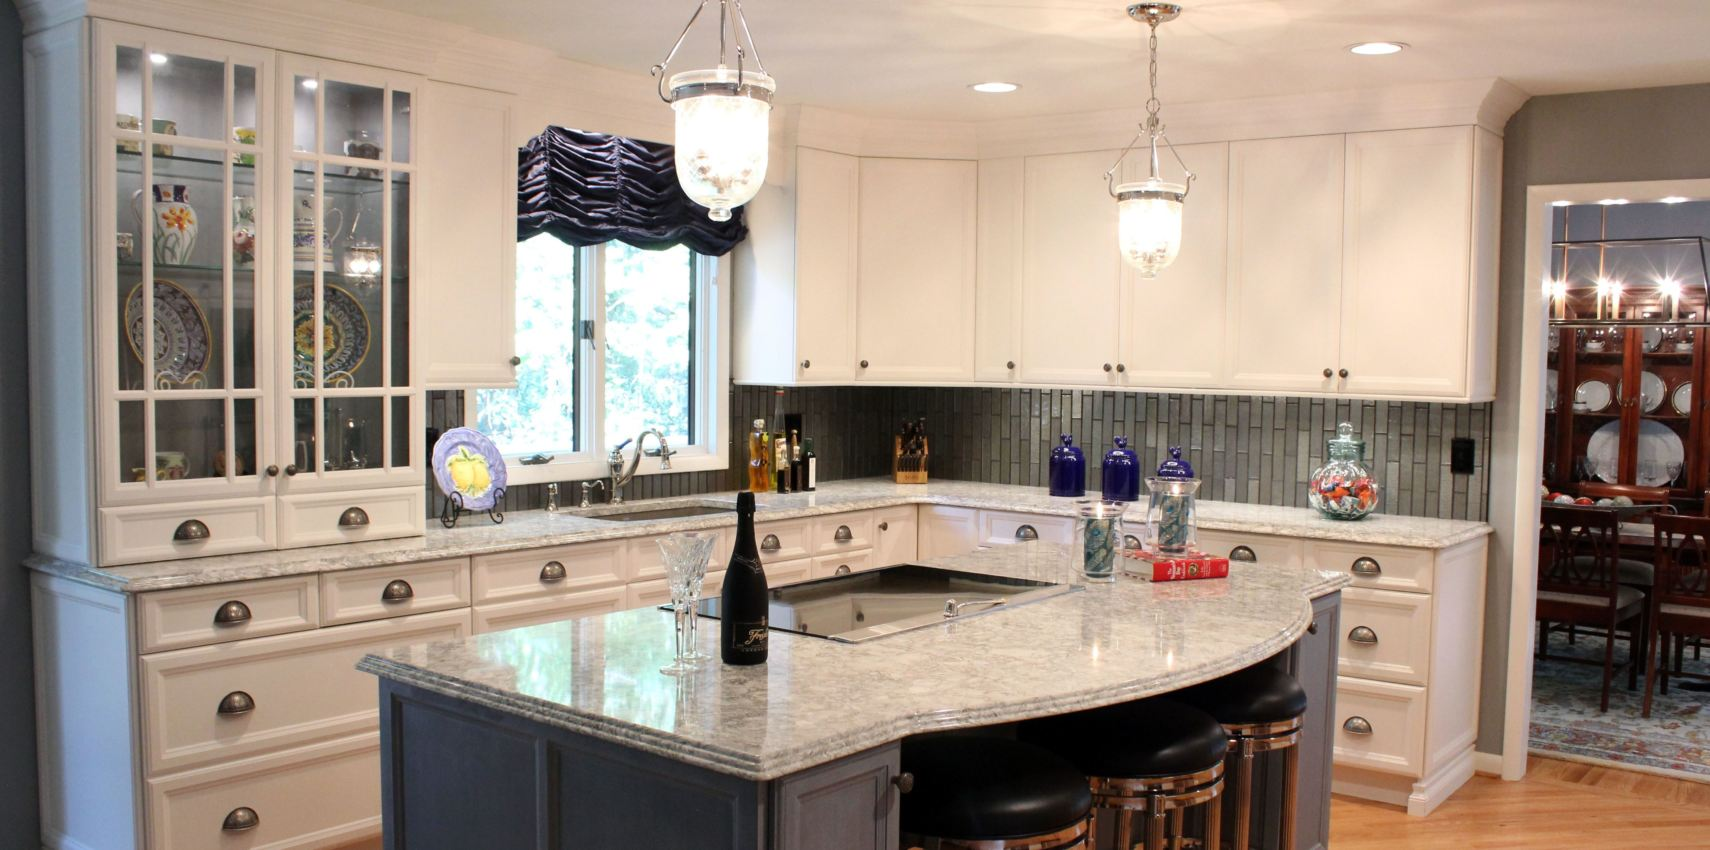 Grandior Kitchen Bath Design Remodeling Cabinetry